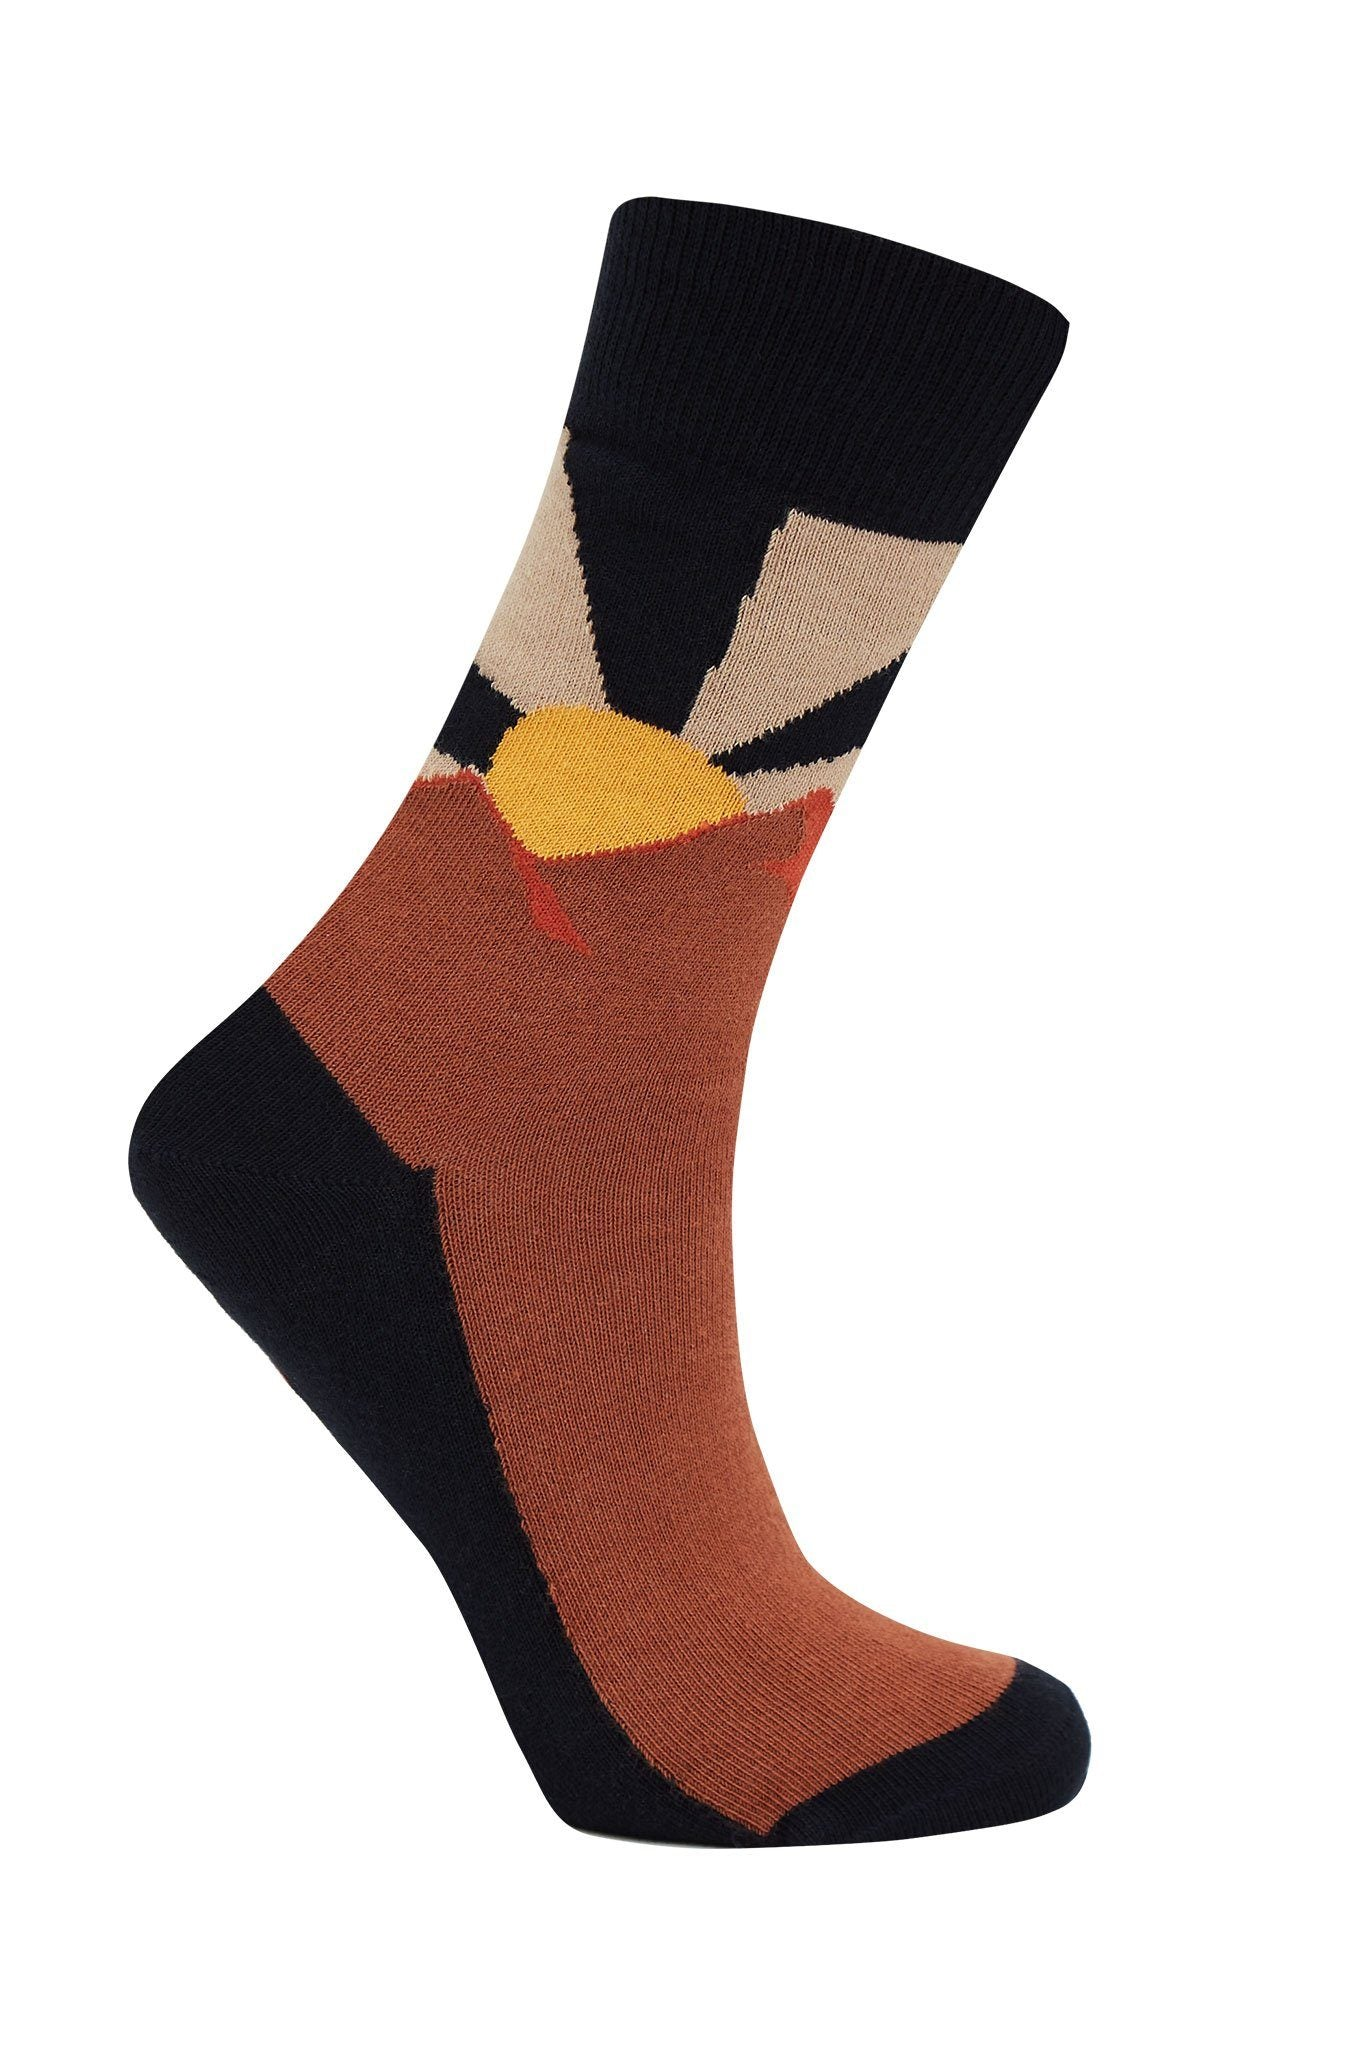 Socks - TIBET Warm Sand - GOTS Organic Cotton Socks